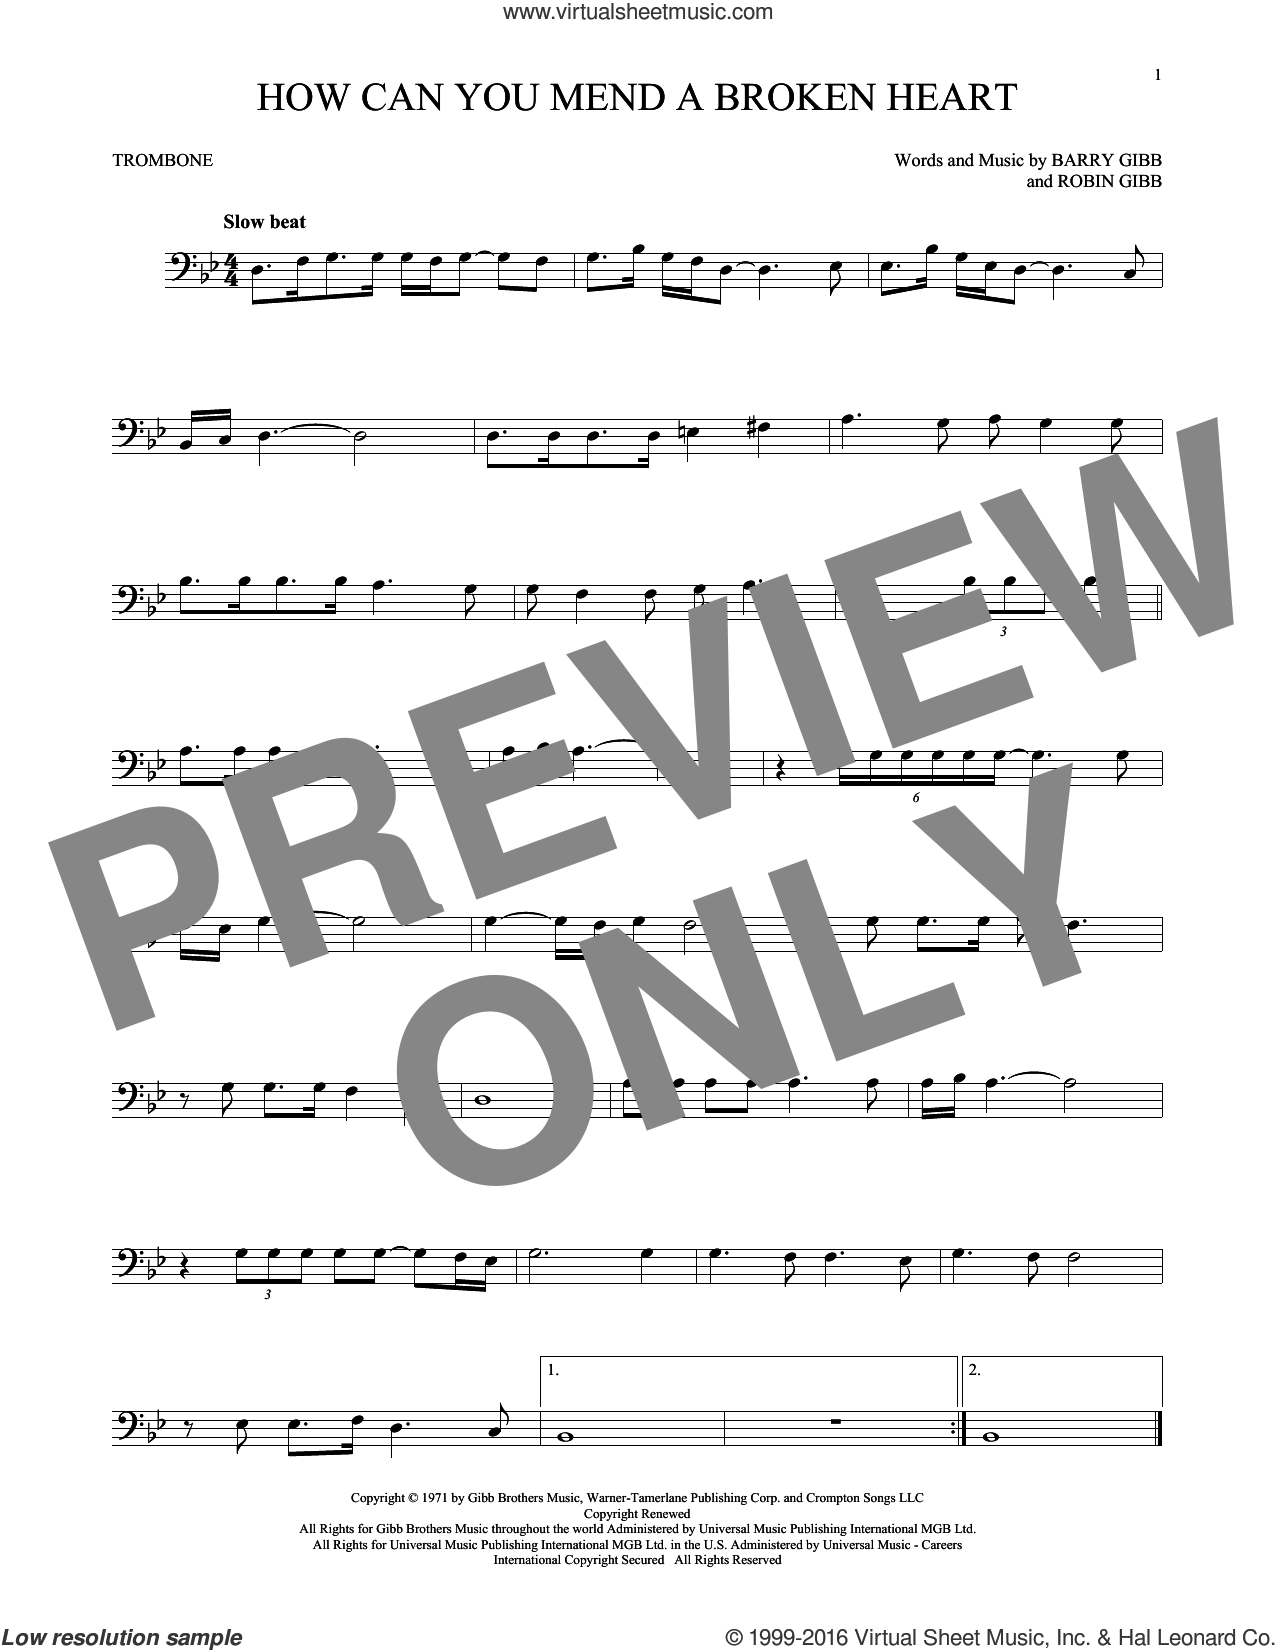 How Can You Mend A Broken Heart sheet music for trombone solo by Robin Gibb, Bee Gees and Barry Gibb. Score Image Preview.